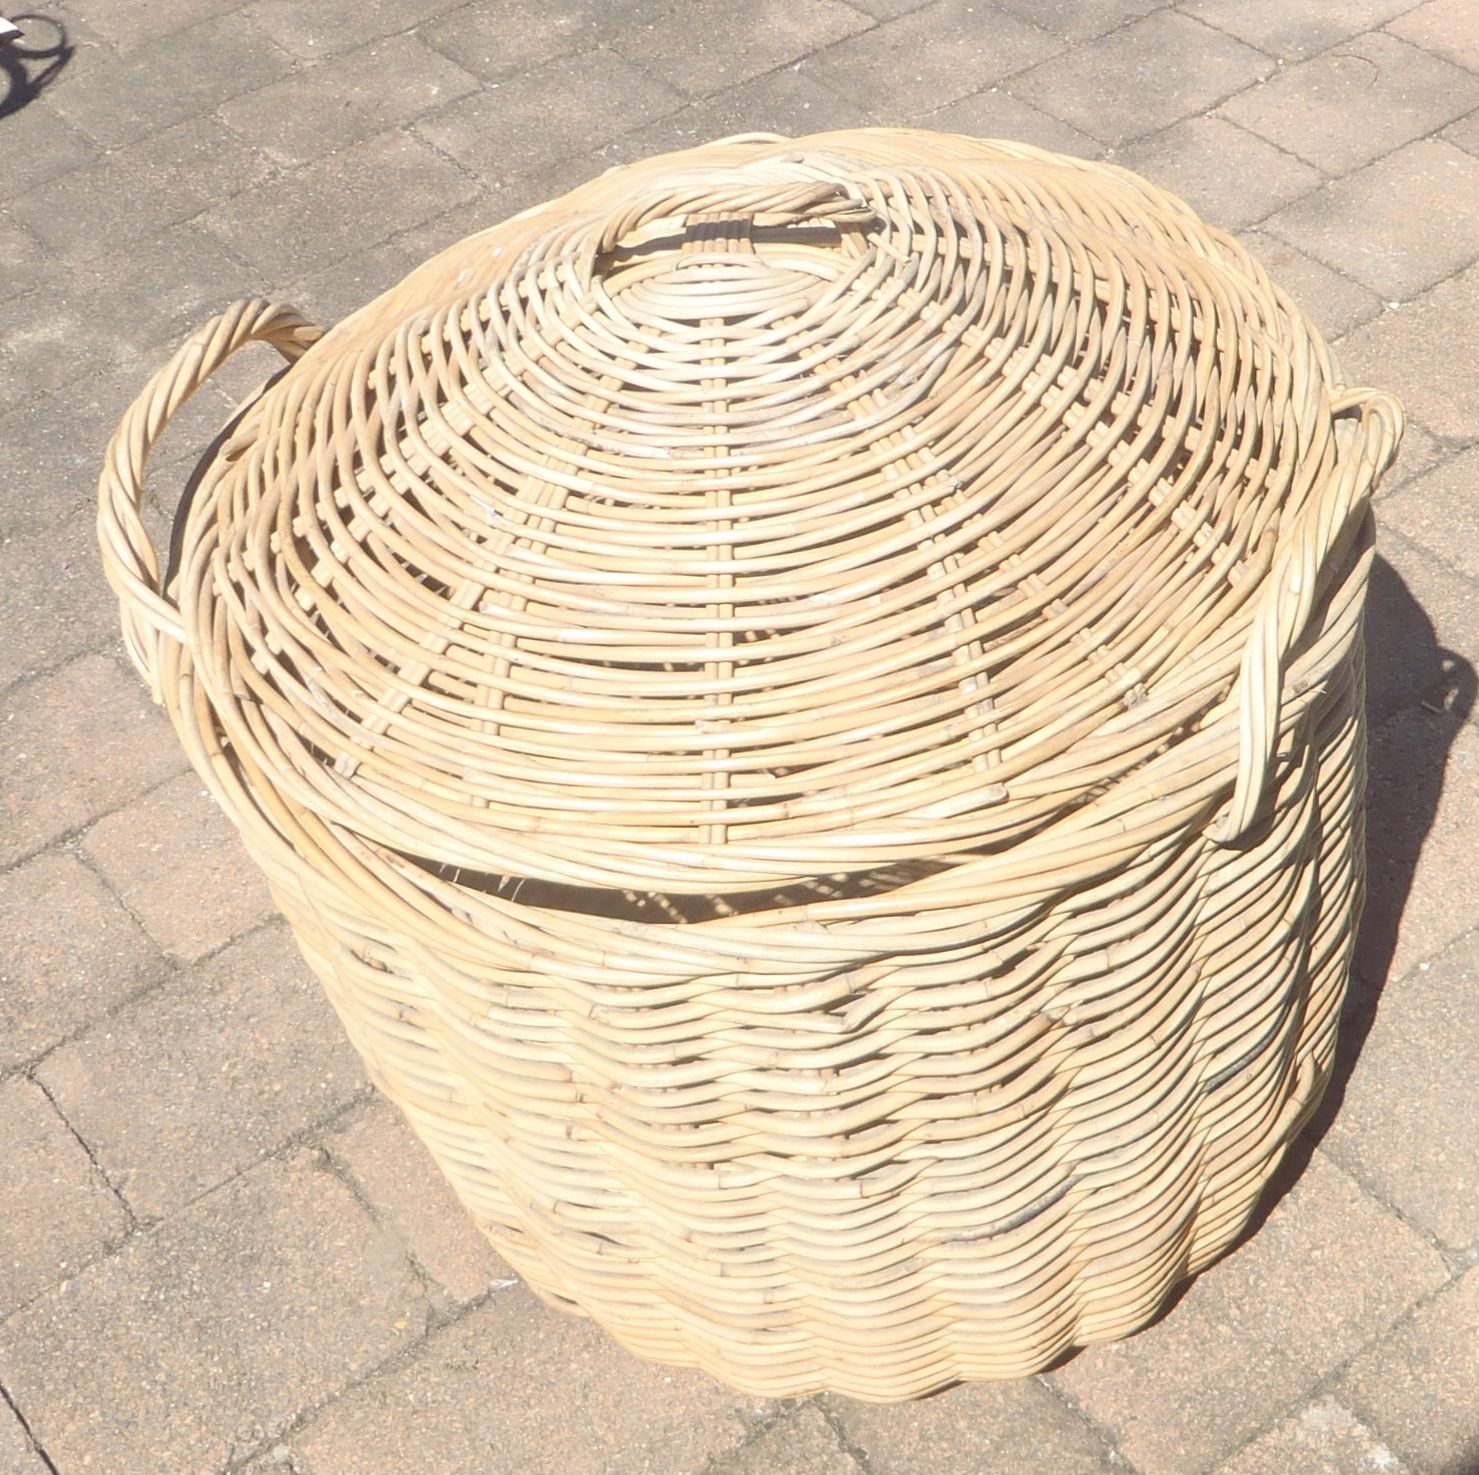 Cane Baskets Cane Basket Large Round With Lid Woven Cane Baskets